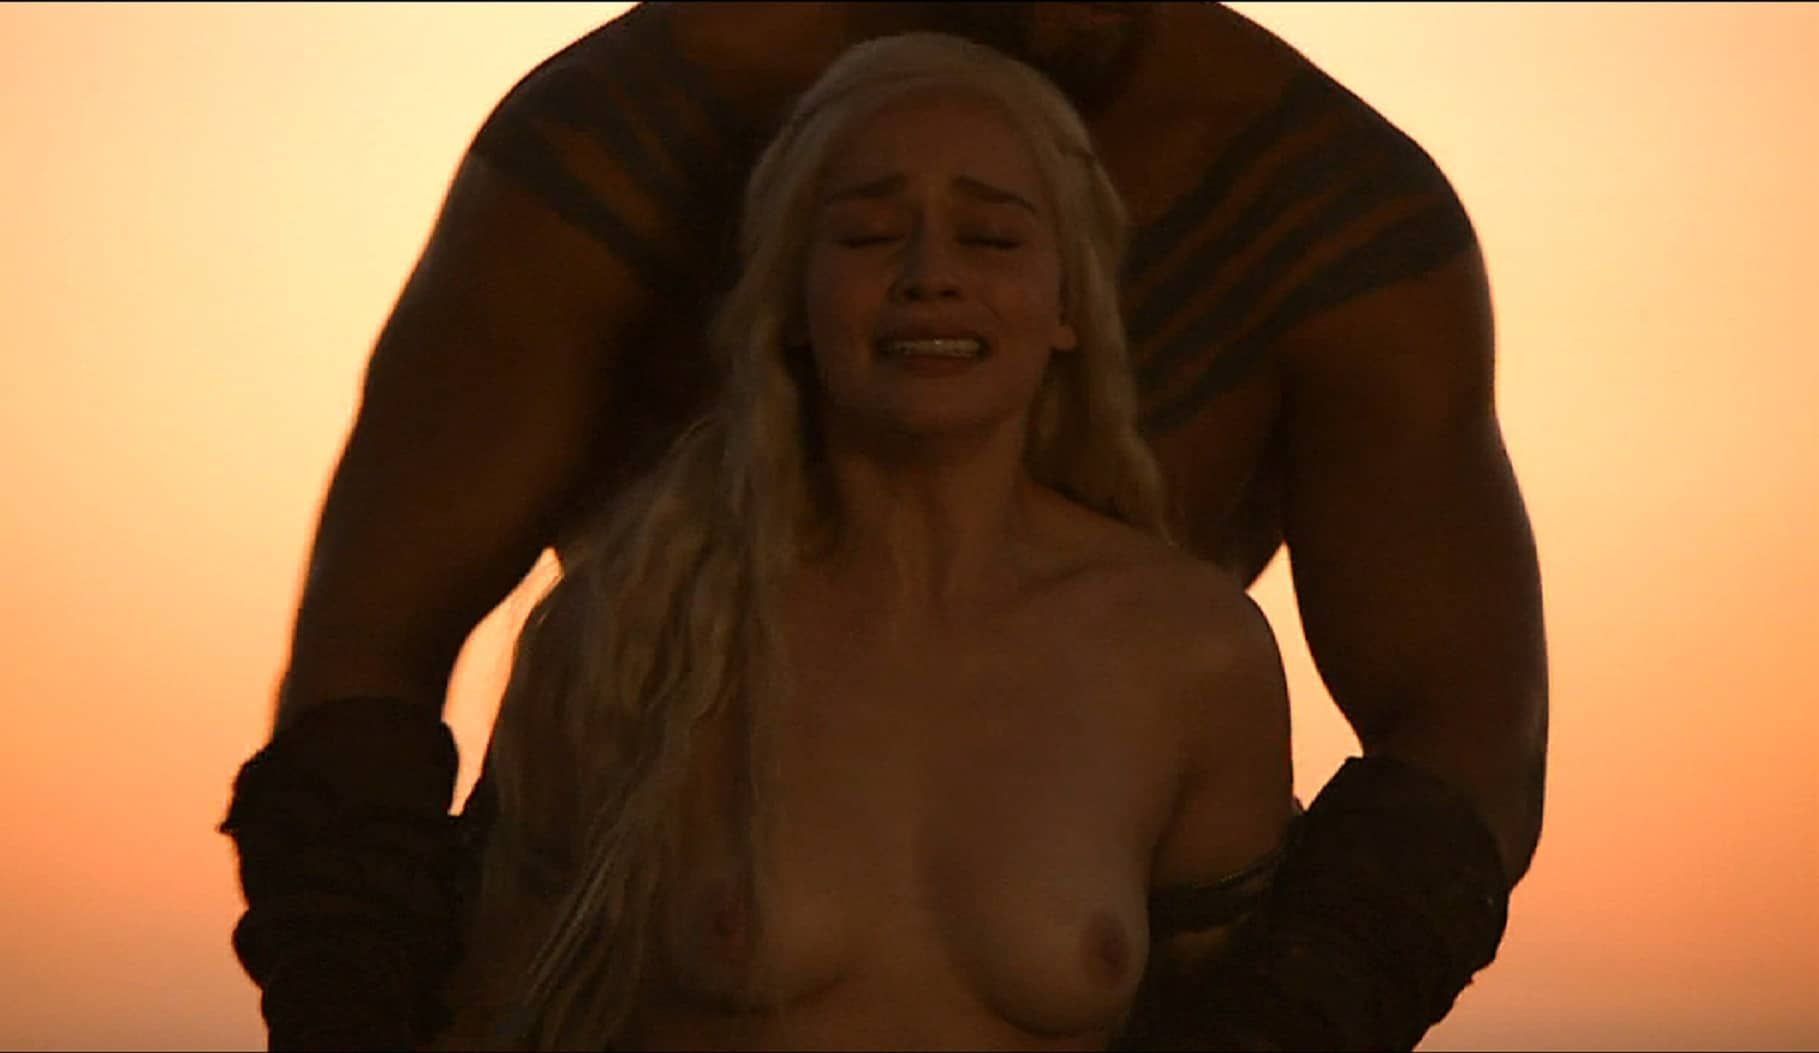 Emilia Clarke topless as she is being held back by a man